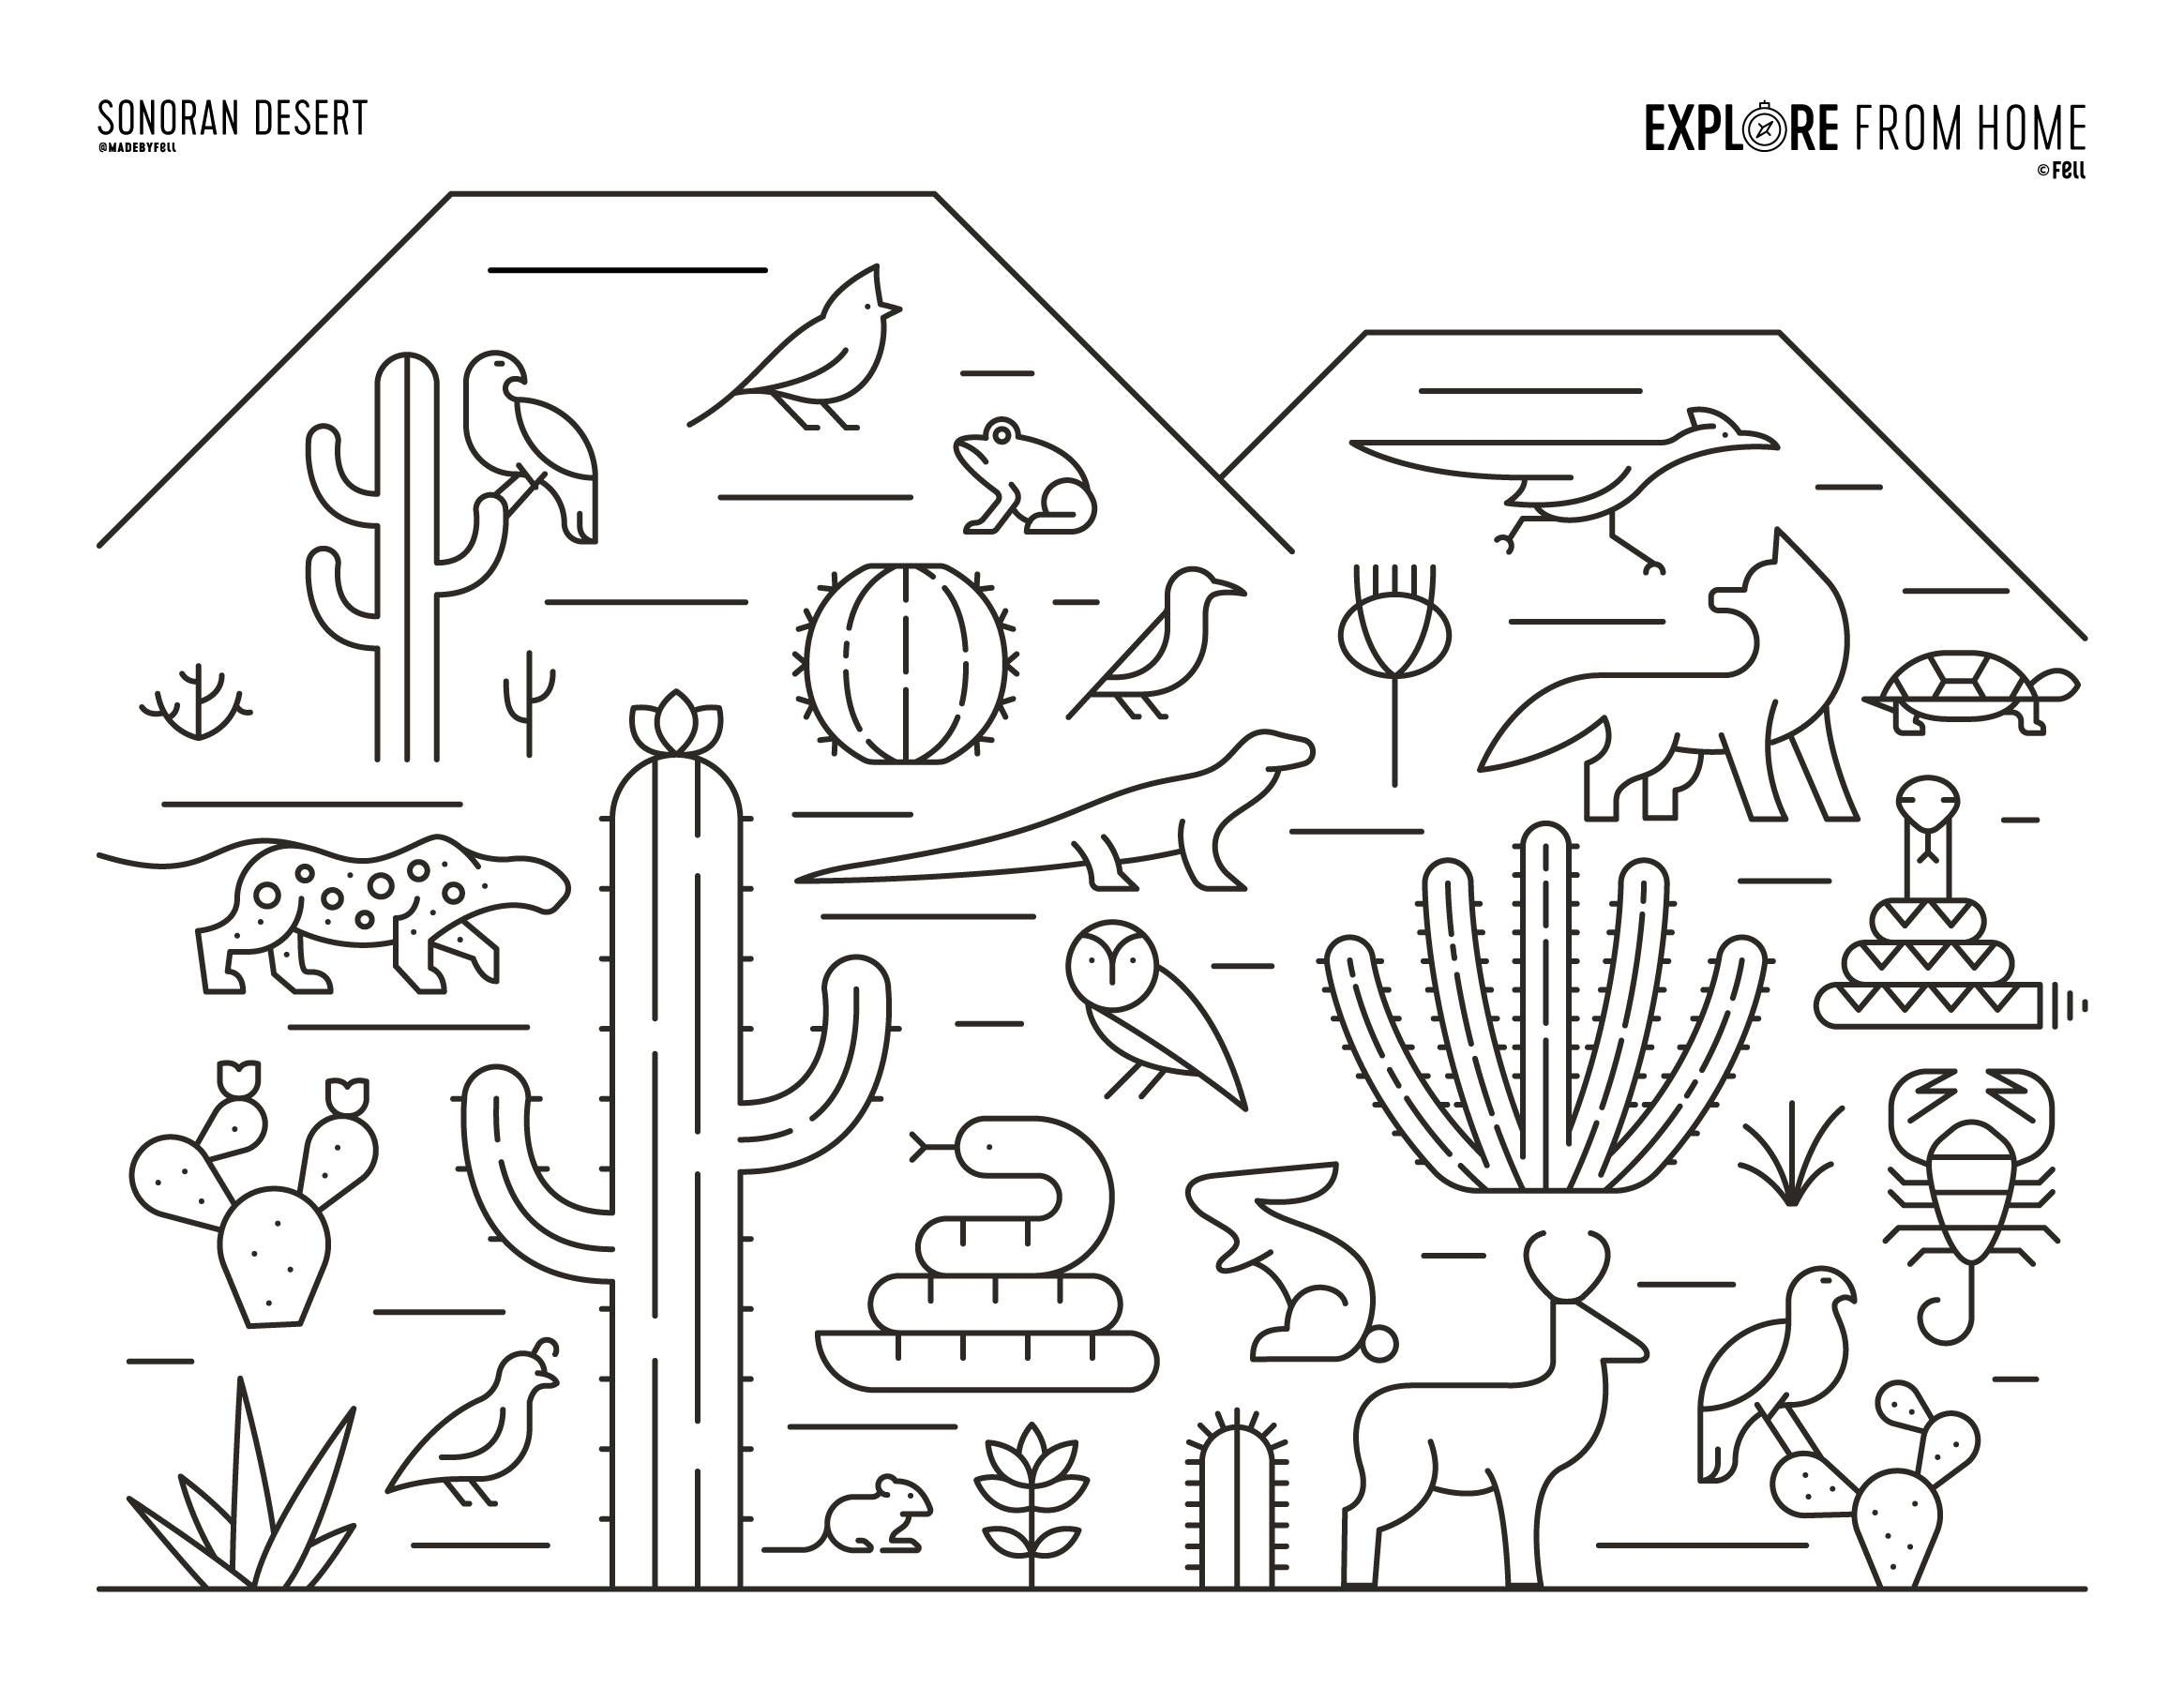 hight resolution of Biomes Sonoran Desert Coloring Page   Coloring pages